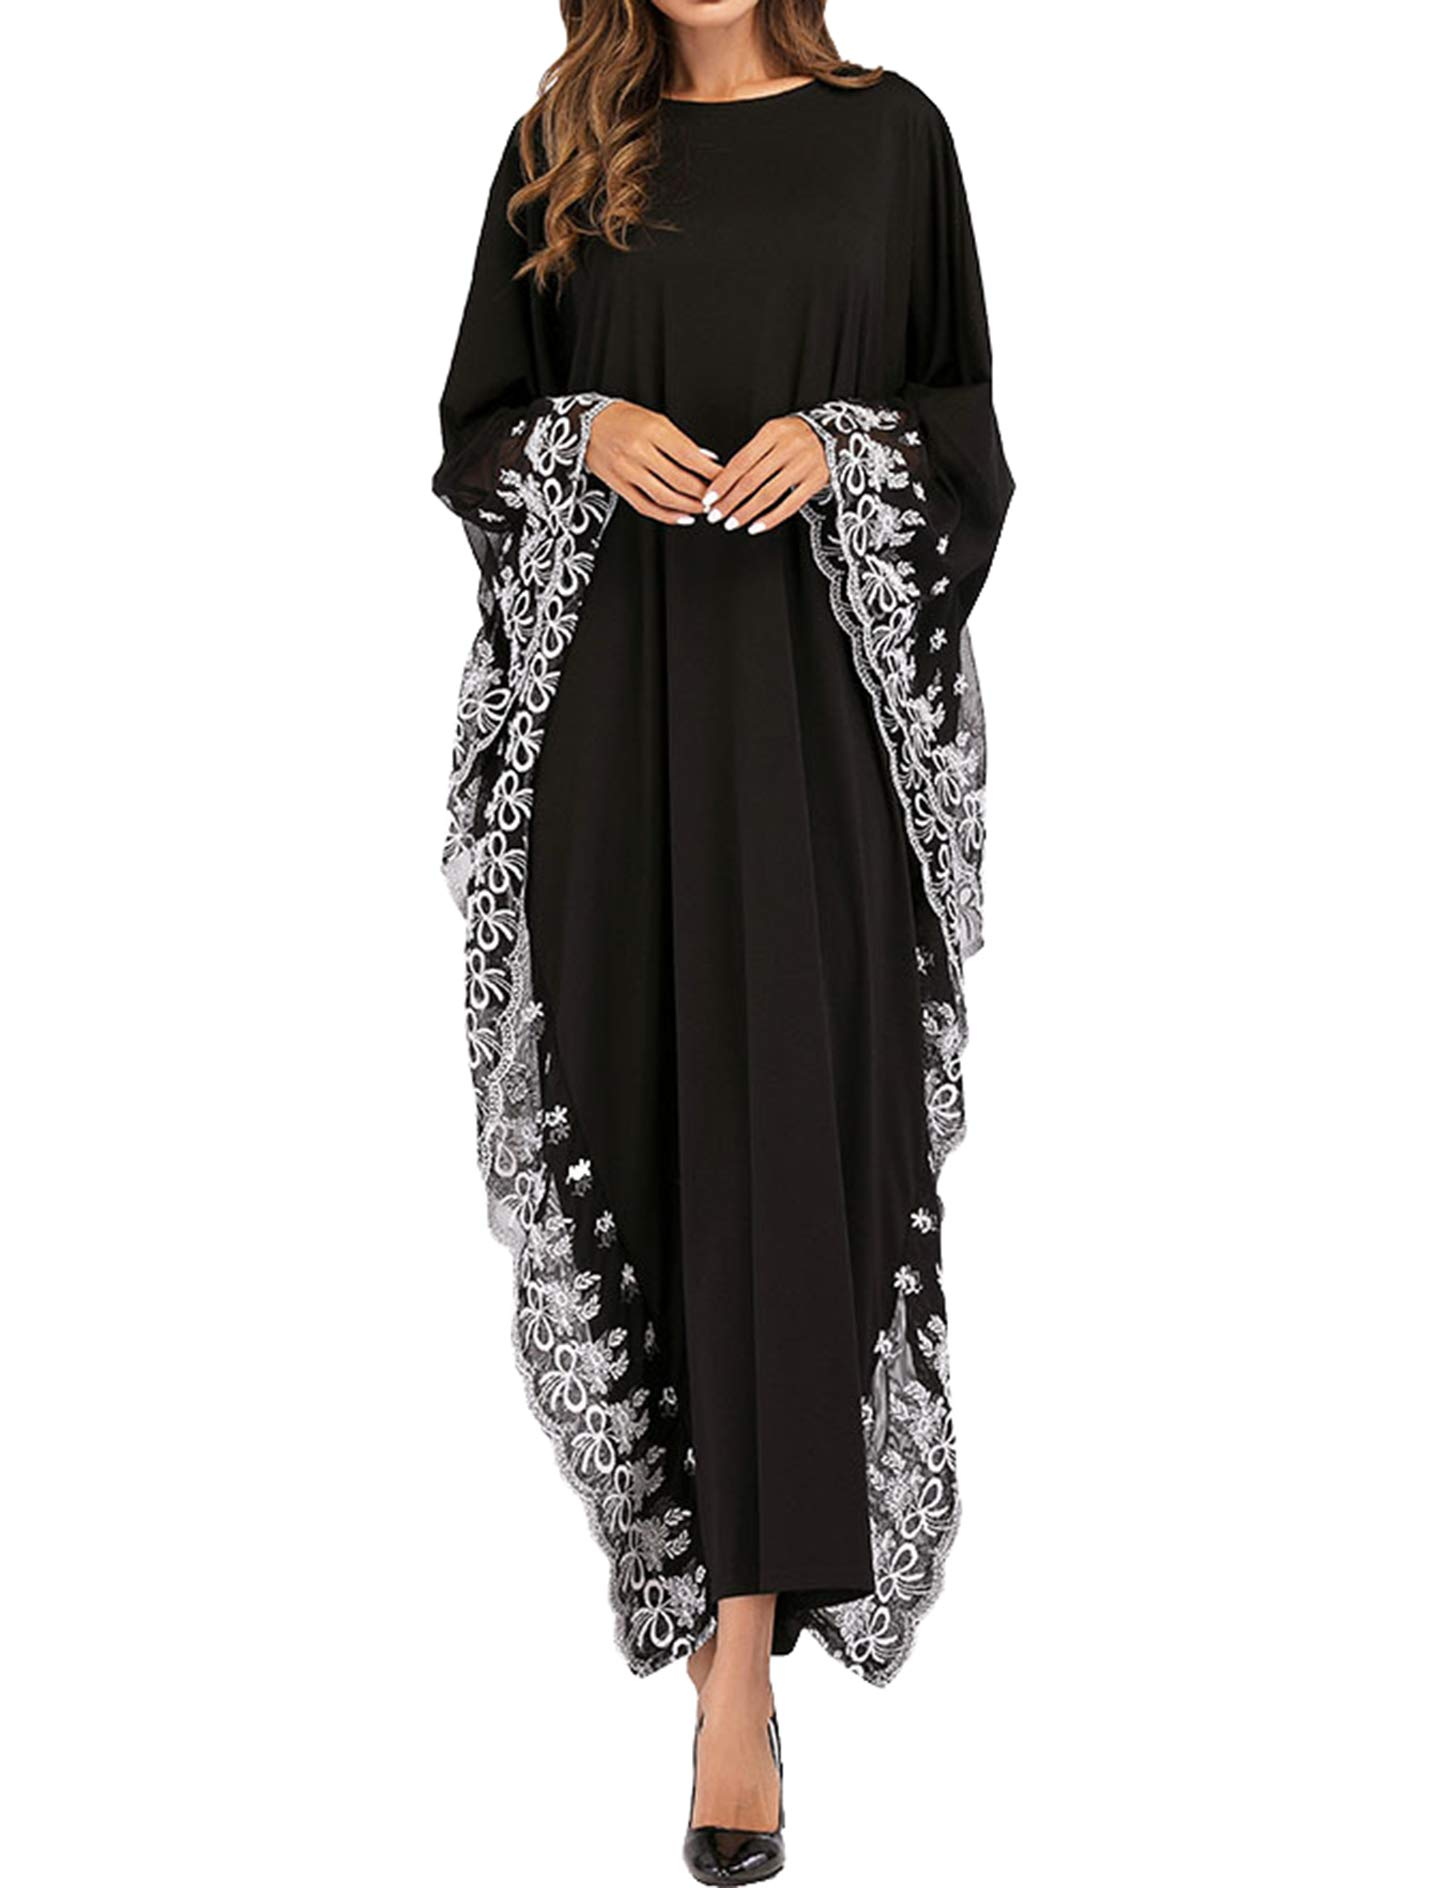 Qianliniuinc Abaya Kaftan Dresses for Women-Long Dress Plus Size Bat Sleeve Clothing Muslim Evening Gown Black